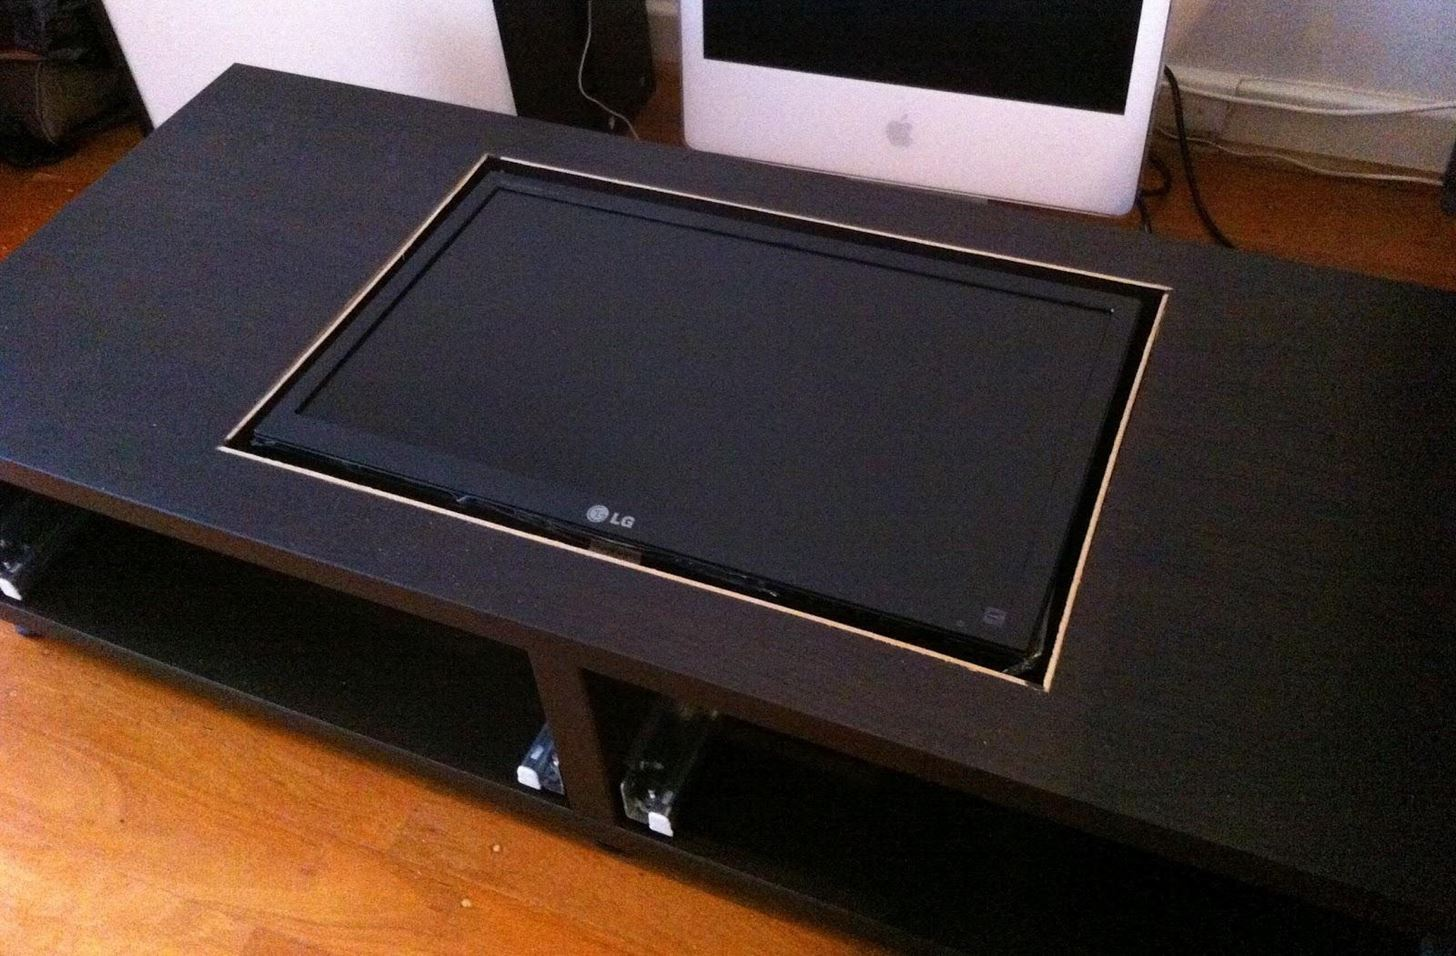 Disguise Your Gaming Addiction With This Diy Coffee Table